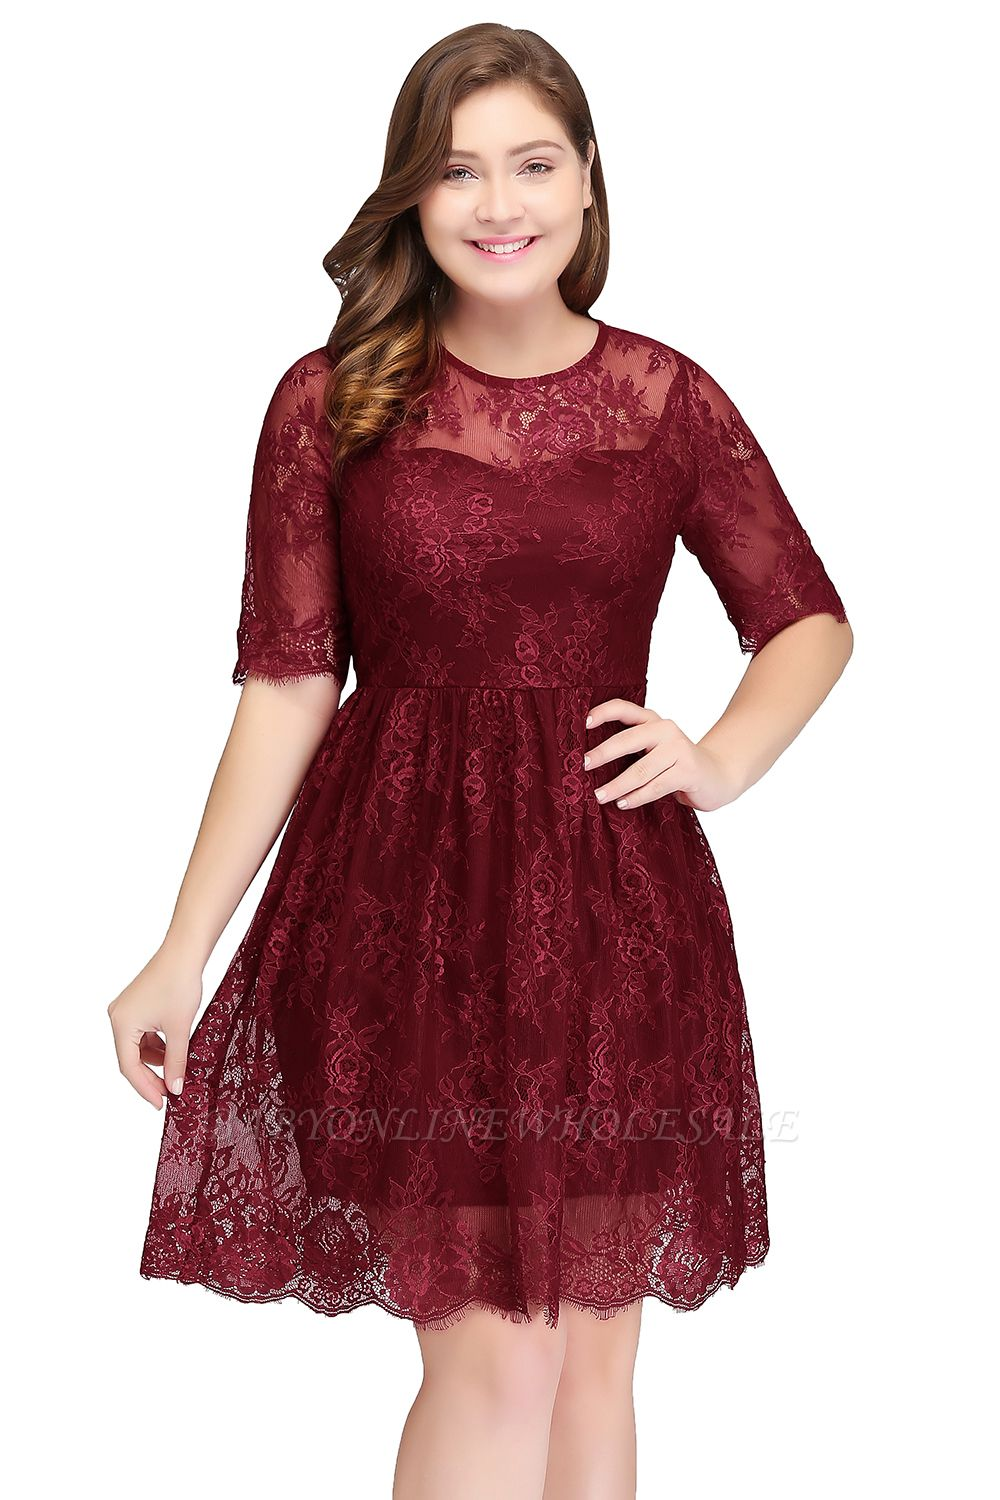 B-JASMINE | A-Line Crew Half Sleeves Lace Burgundy Plus size homecoming Dresses